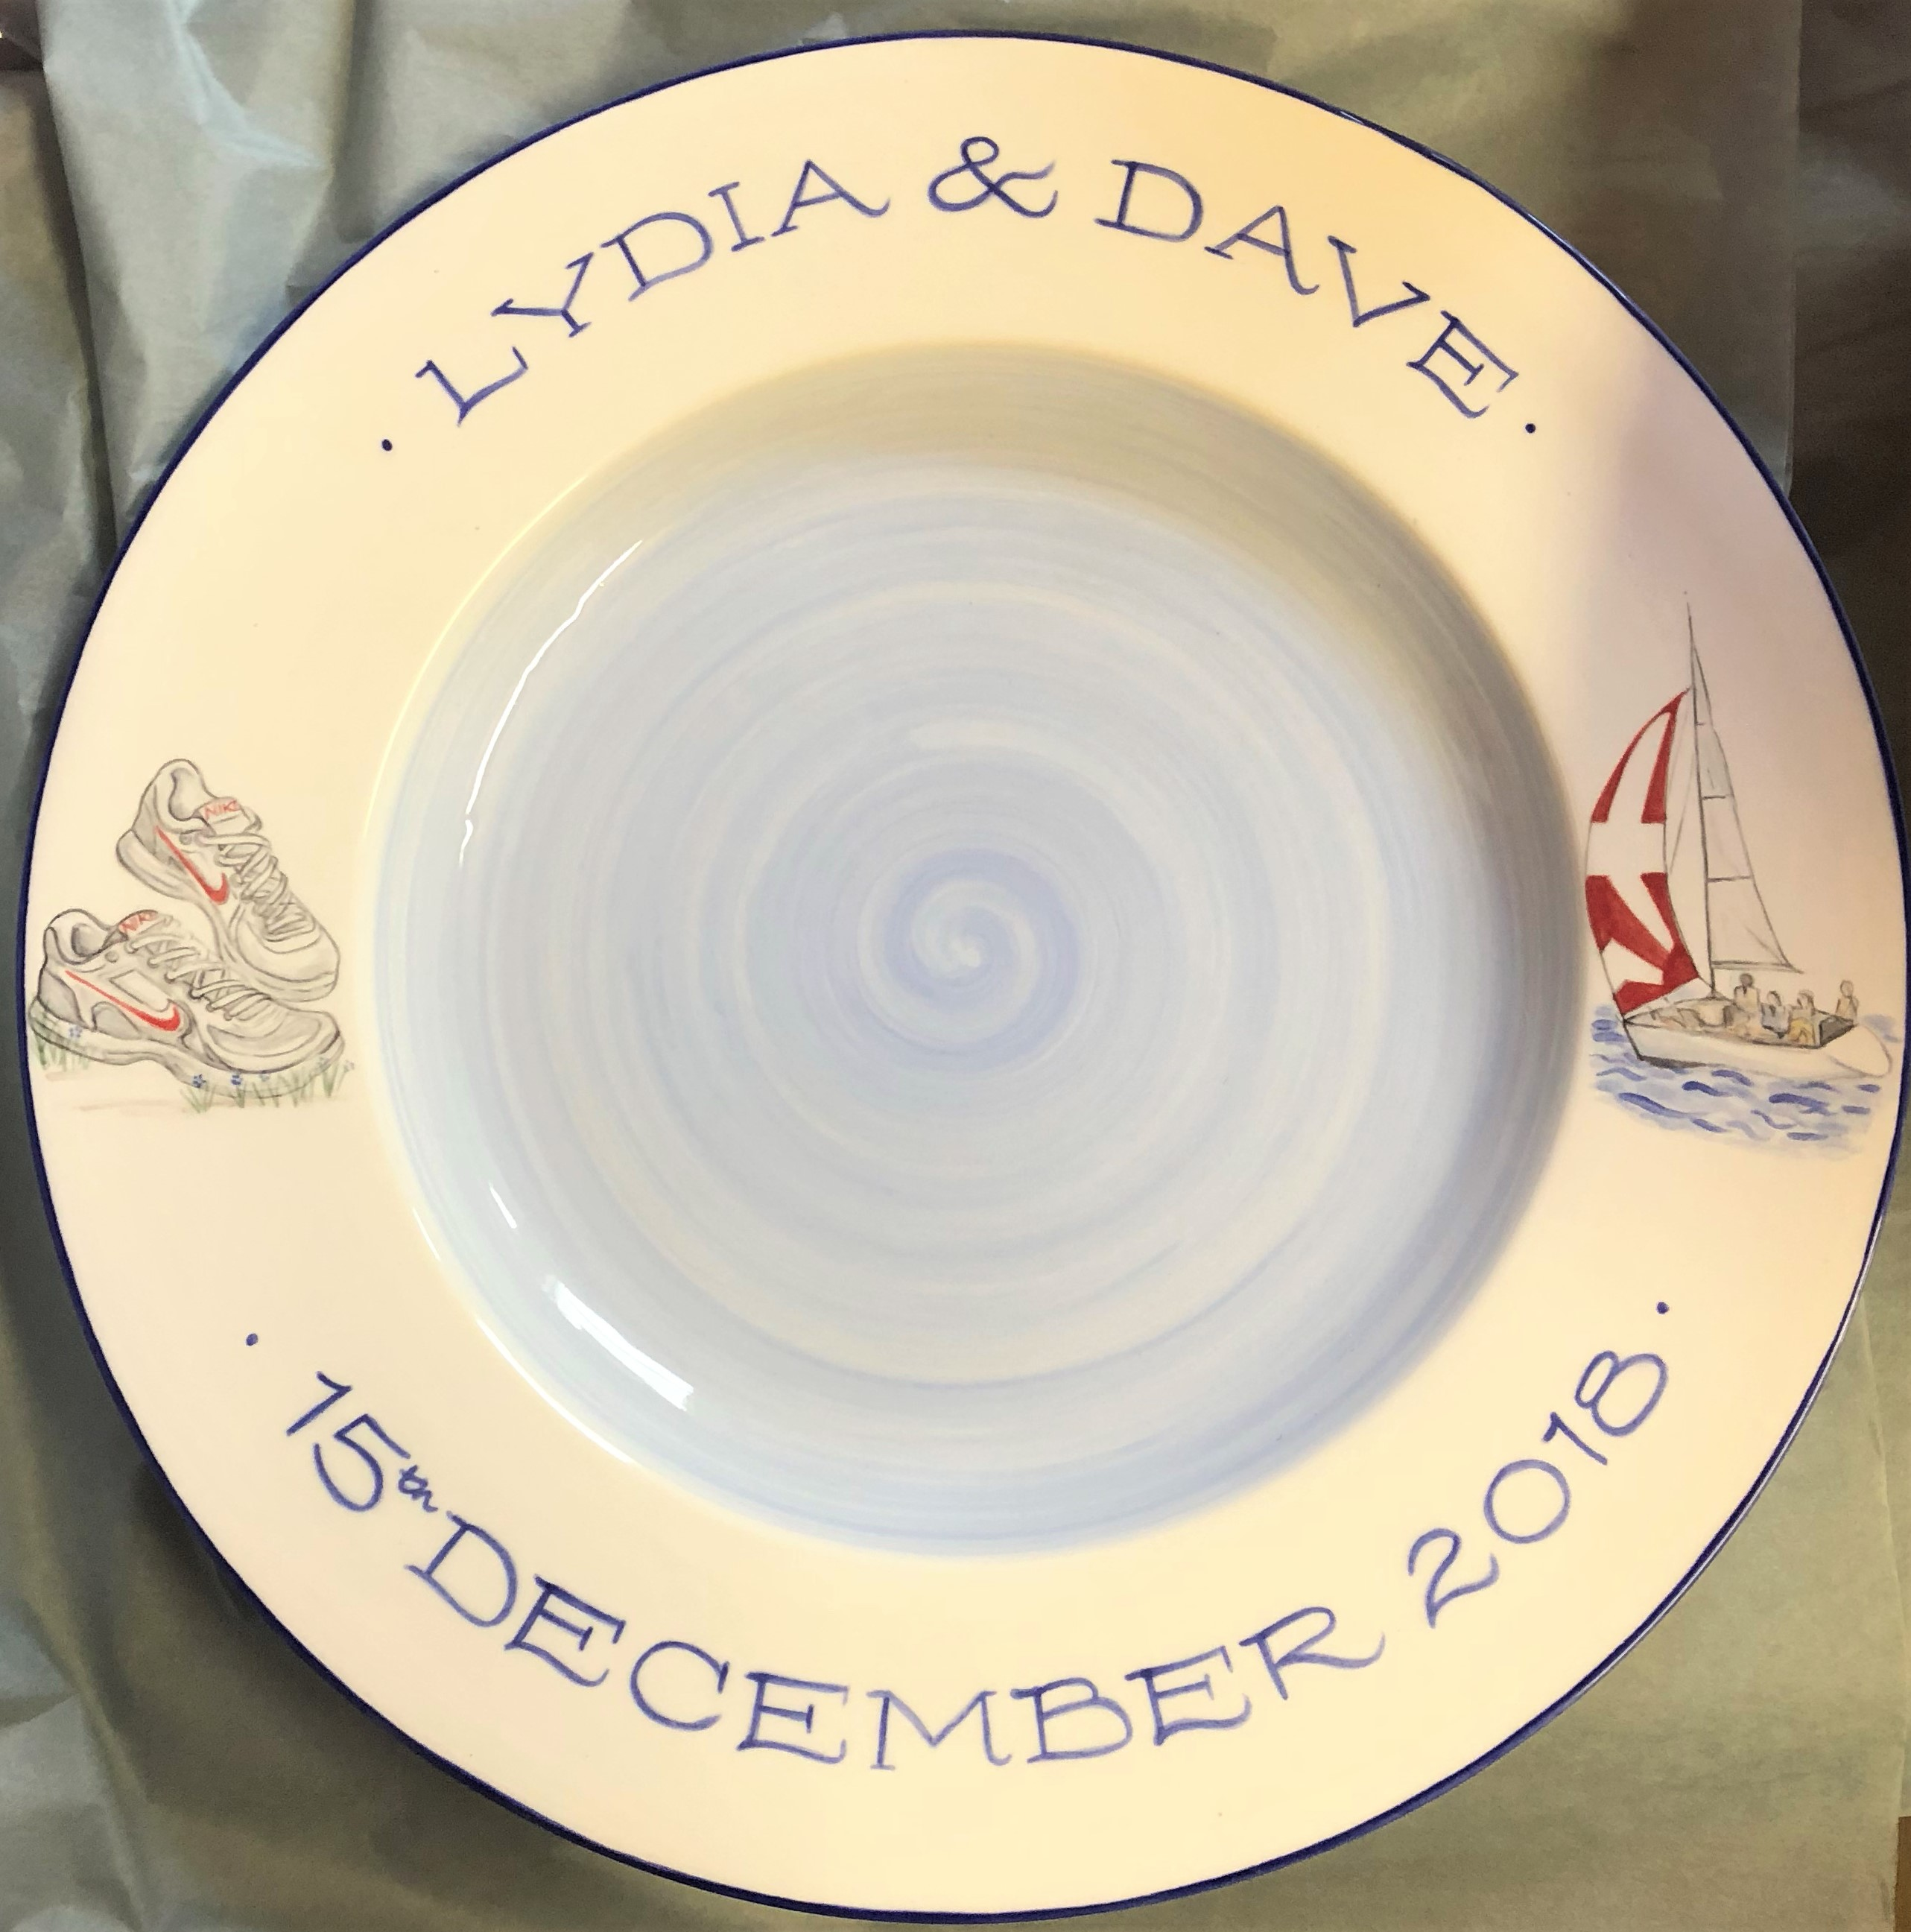 Wedding Signing Plate, inspired by the bride and groom's hobbies